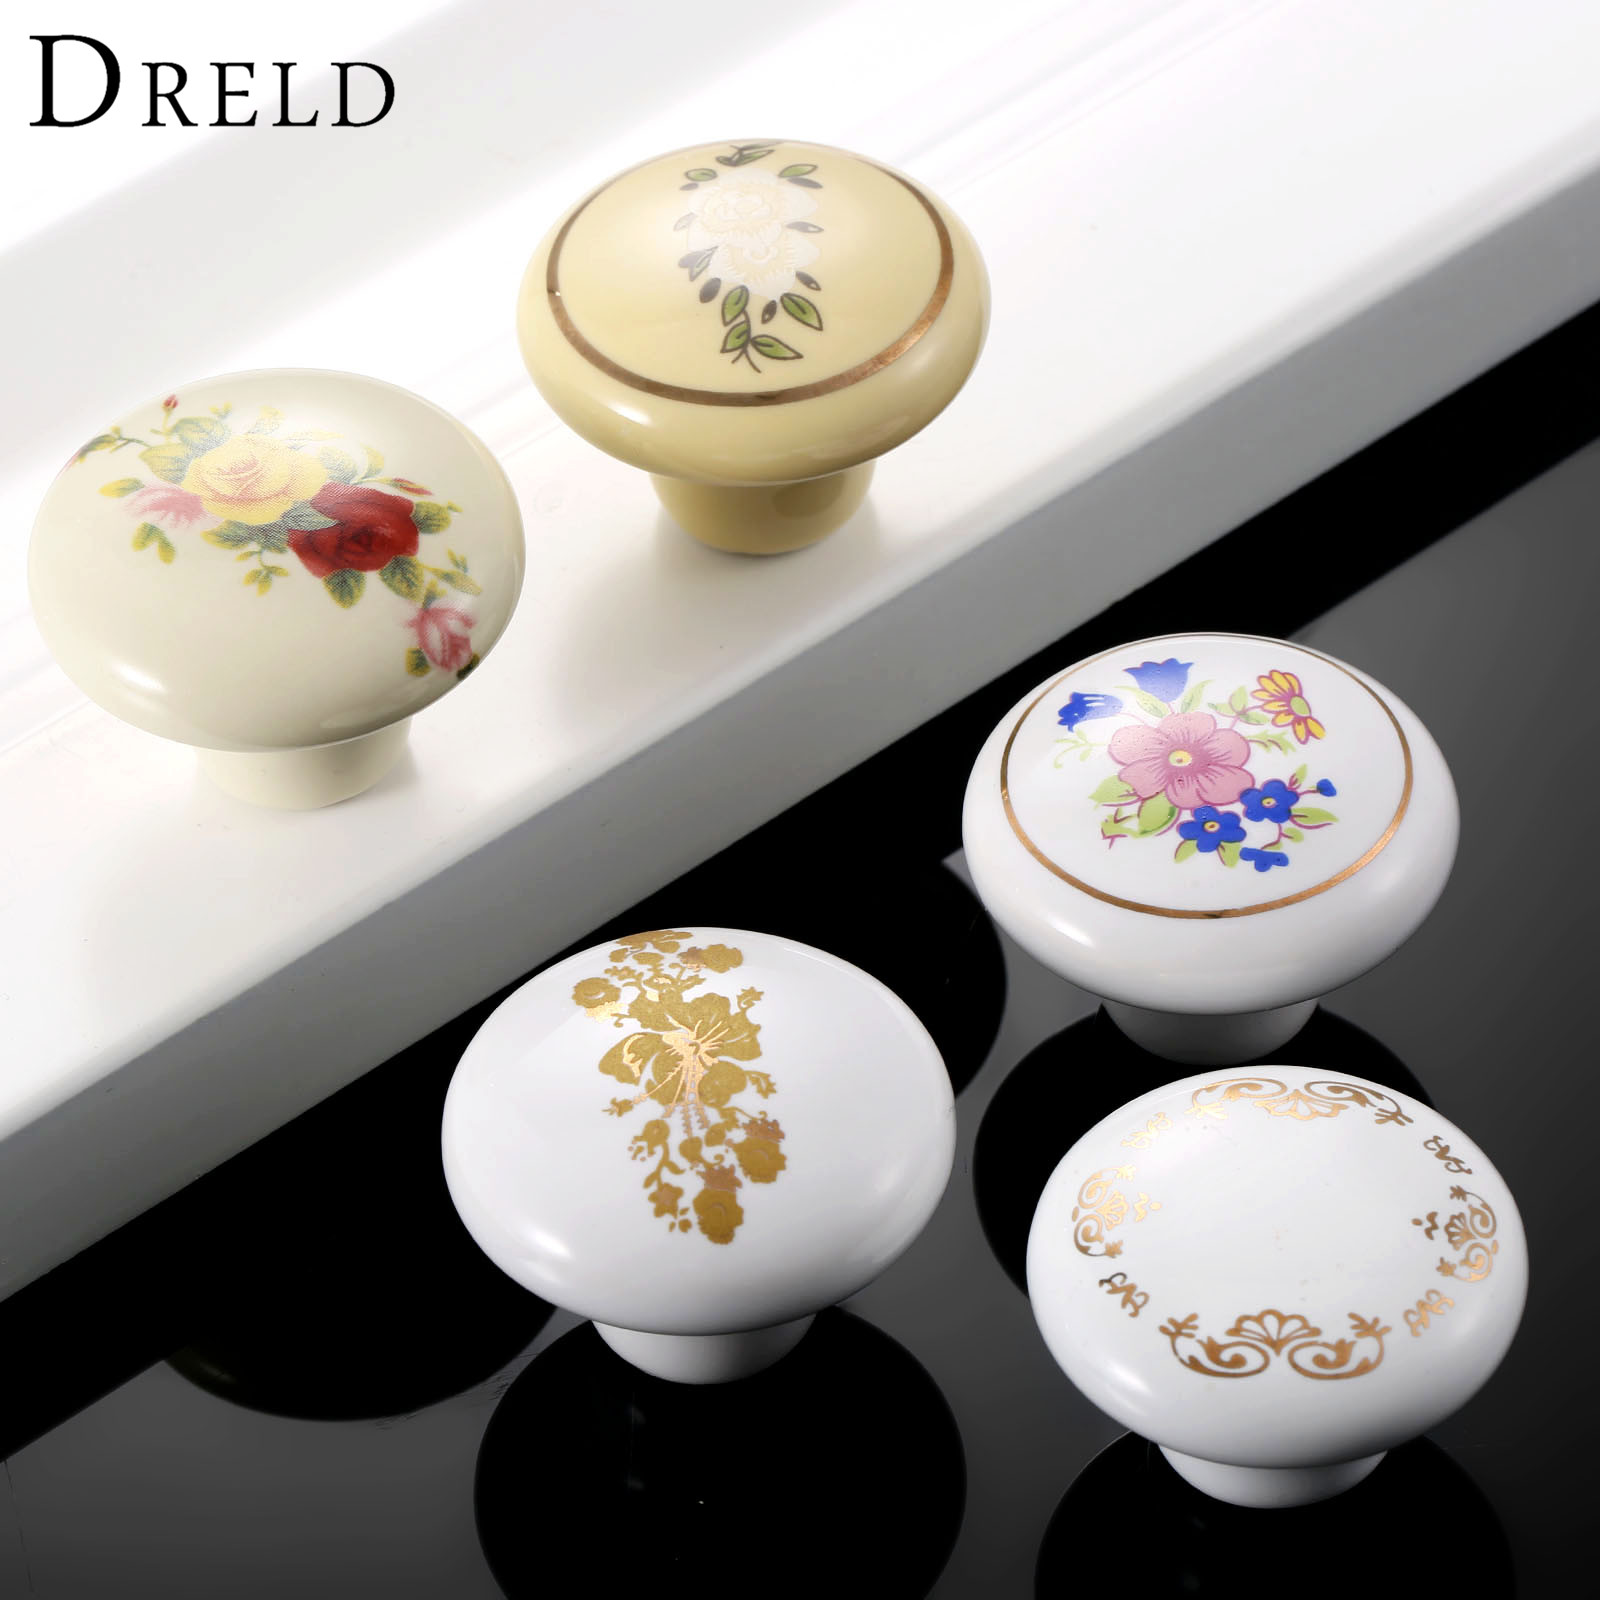 DRELD 1Pc Round Furniture Knobs Ceramic Cupboard Drawer Cabinet Knobs and Handles Door Kitchen Pull Handles Furniture Fittings 2016 ceramic bear furniture knobs kitchen door drawer cupboard wardrobe pull handle cabinet knobs and handles furniture fittings